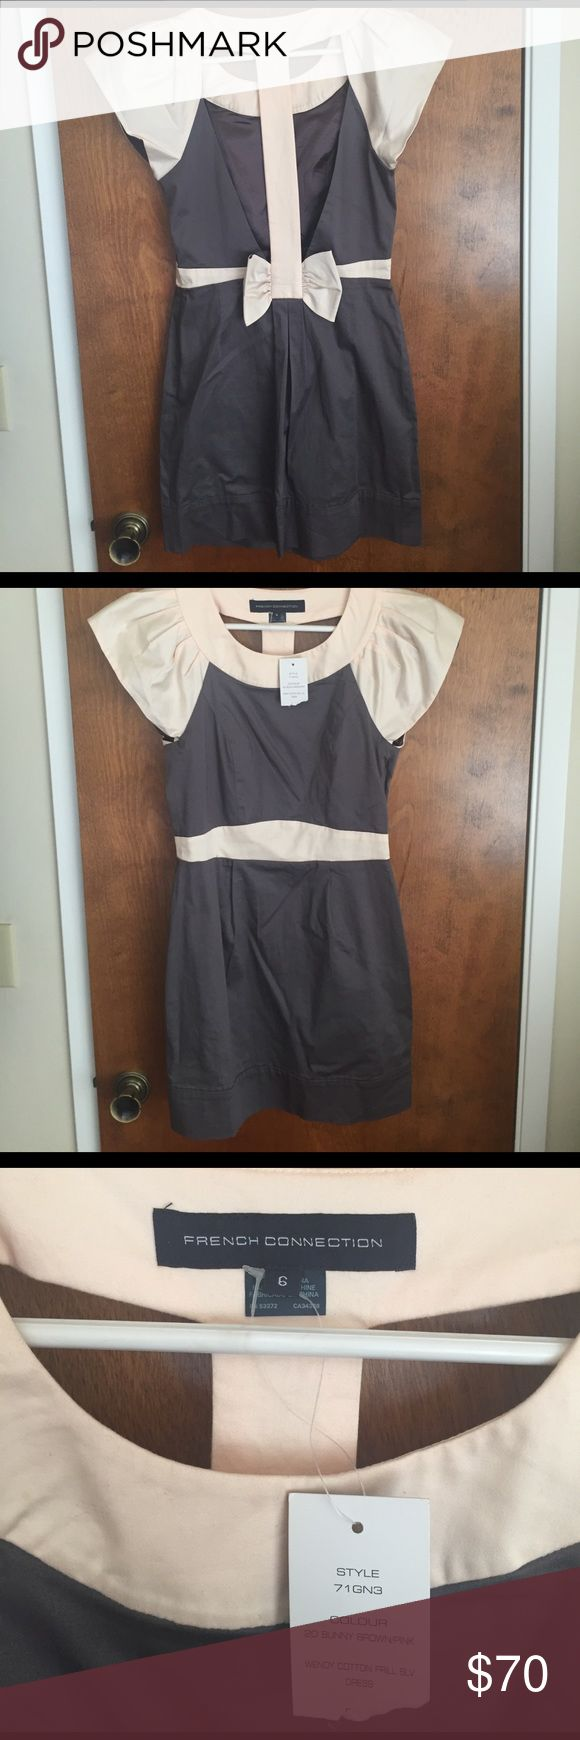 NWT French Connection Bow Back Dress Never worn and I've been obsessed with it, but have no where to wear it! My loss is your gain 😔 (NO LOW BALL OFFERS WILL BE ACCEPTED) French Connection Dresses Backless